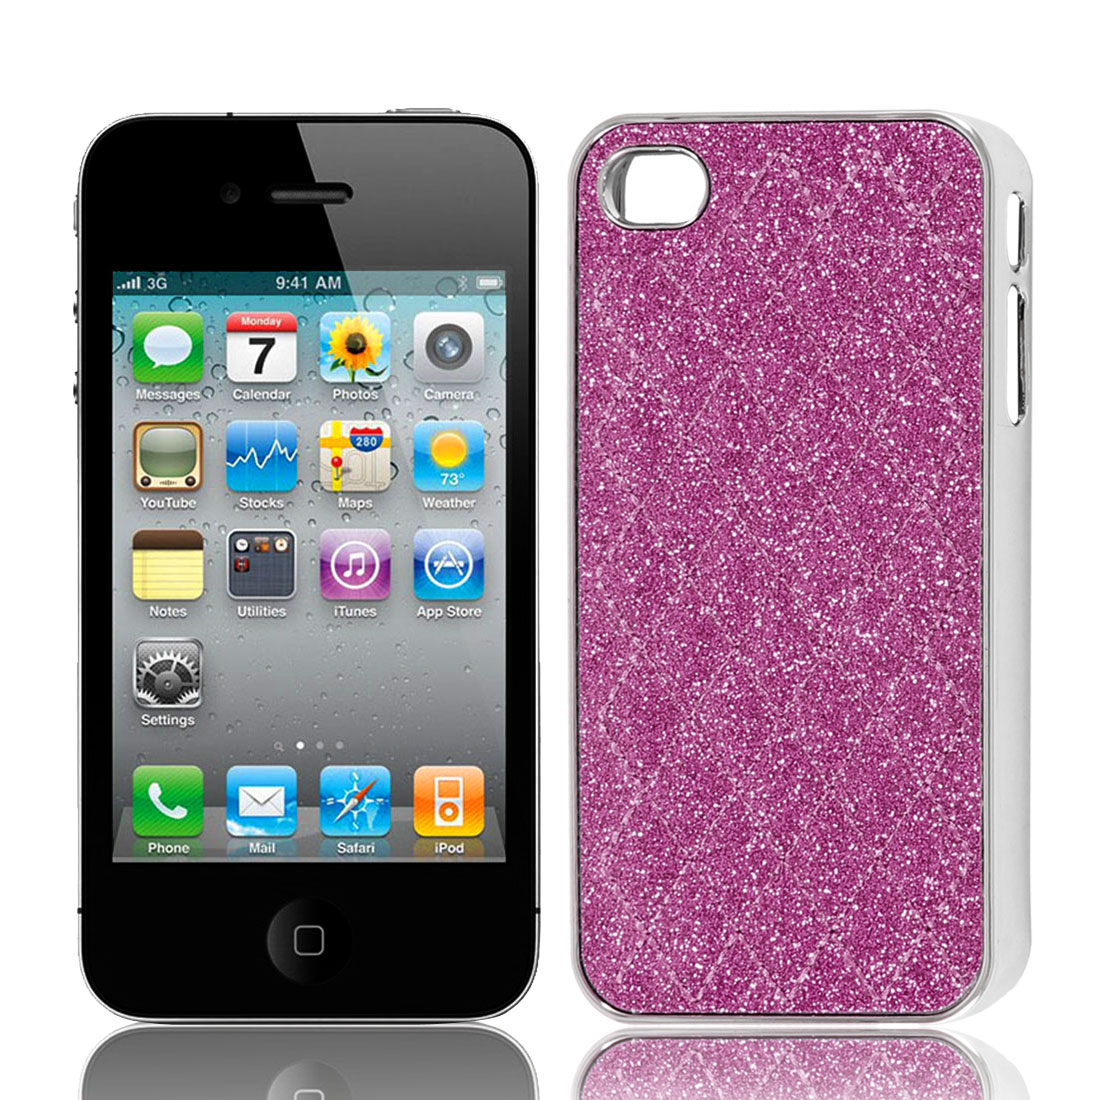 Fuchsia Glitter Powder Argyle Pattern Hard Back Case Cover for iPhone 4 4G 4S